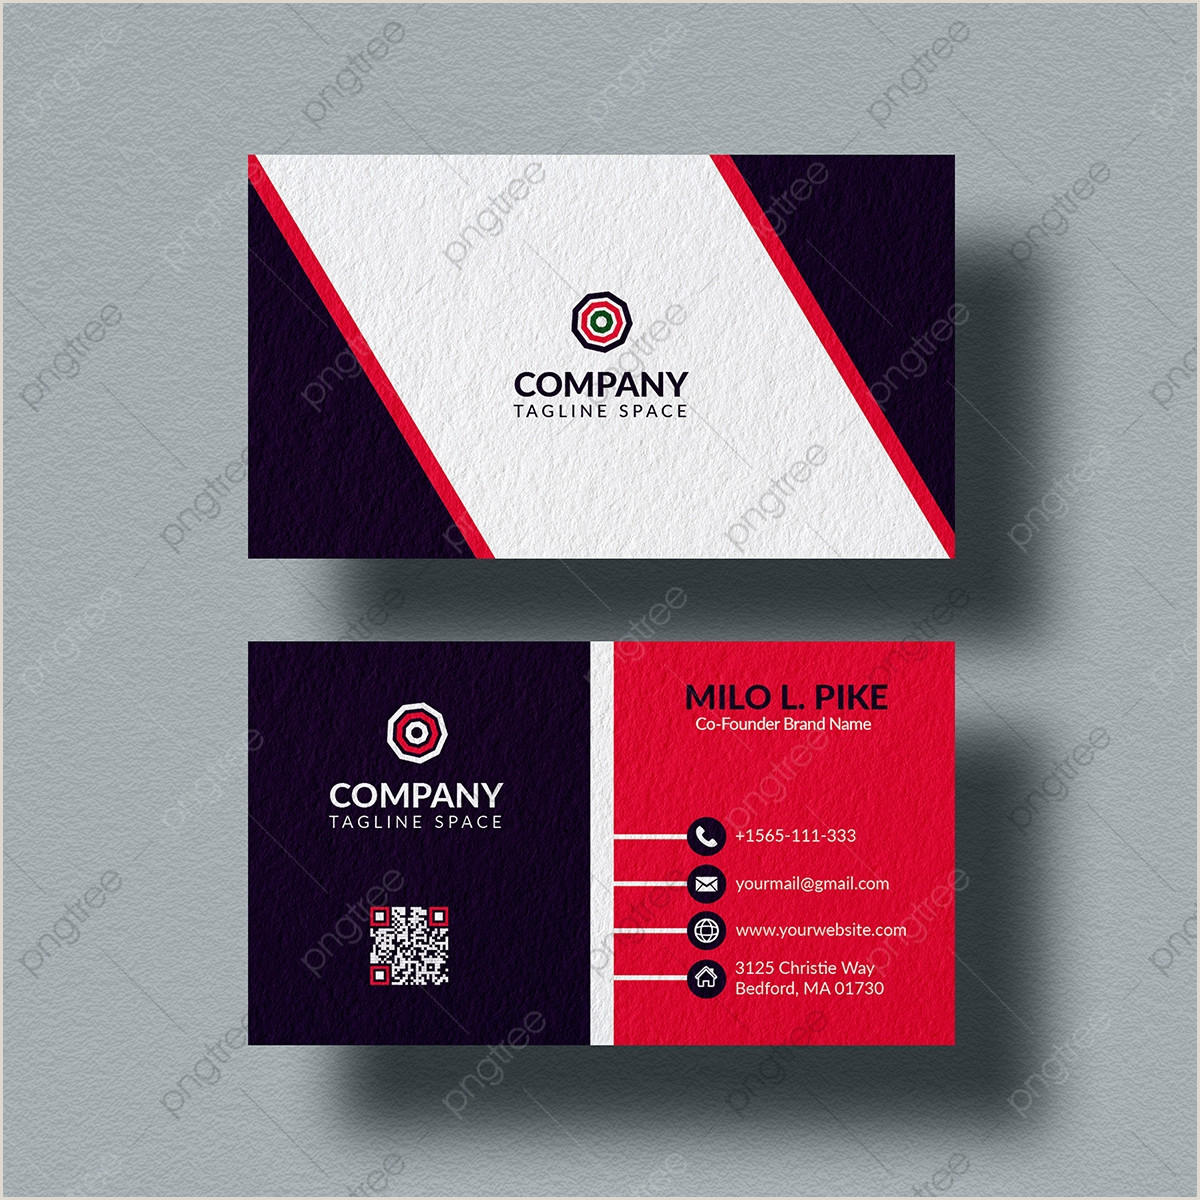 Back Of Business Card Template Business Card Format Png